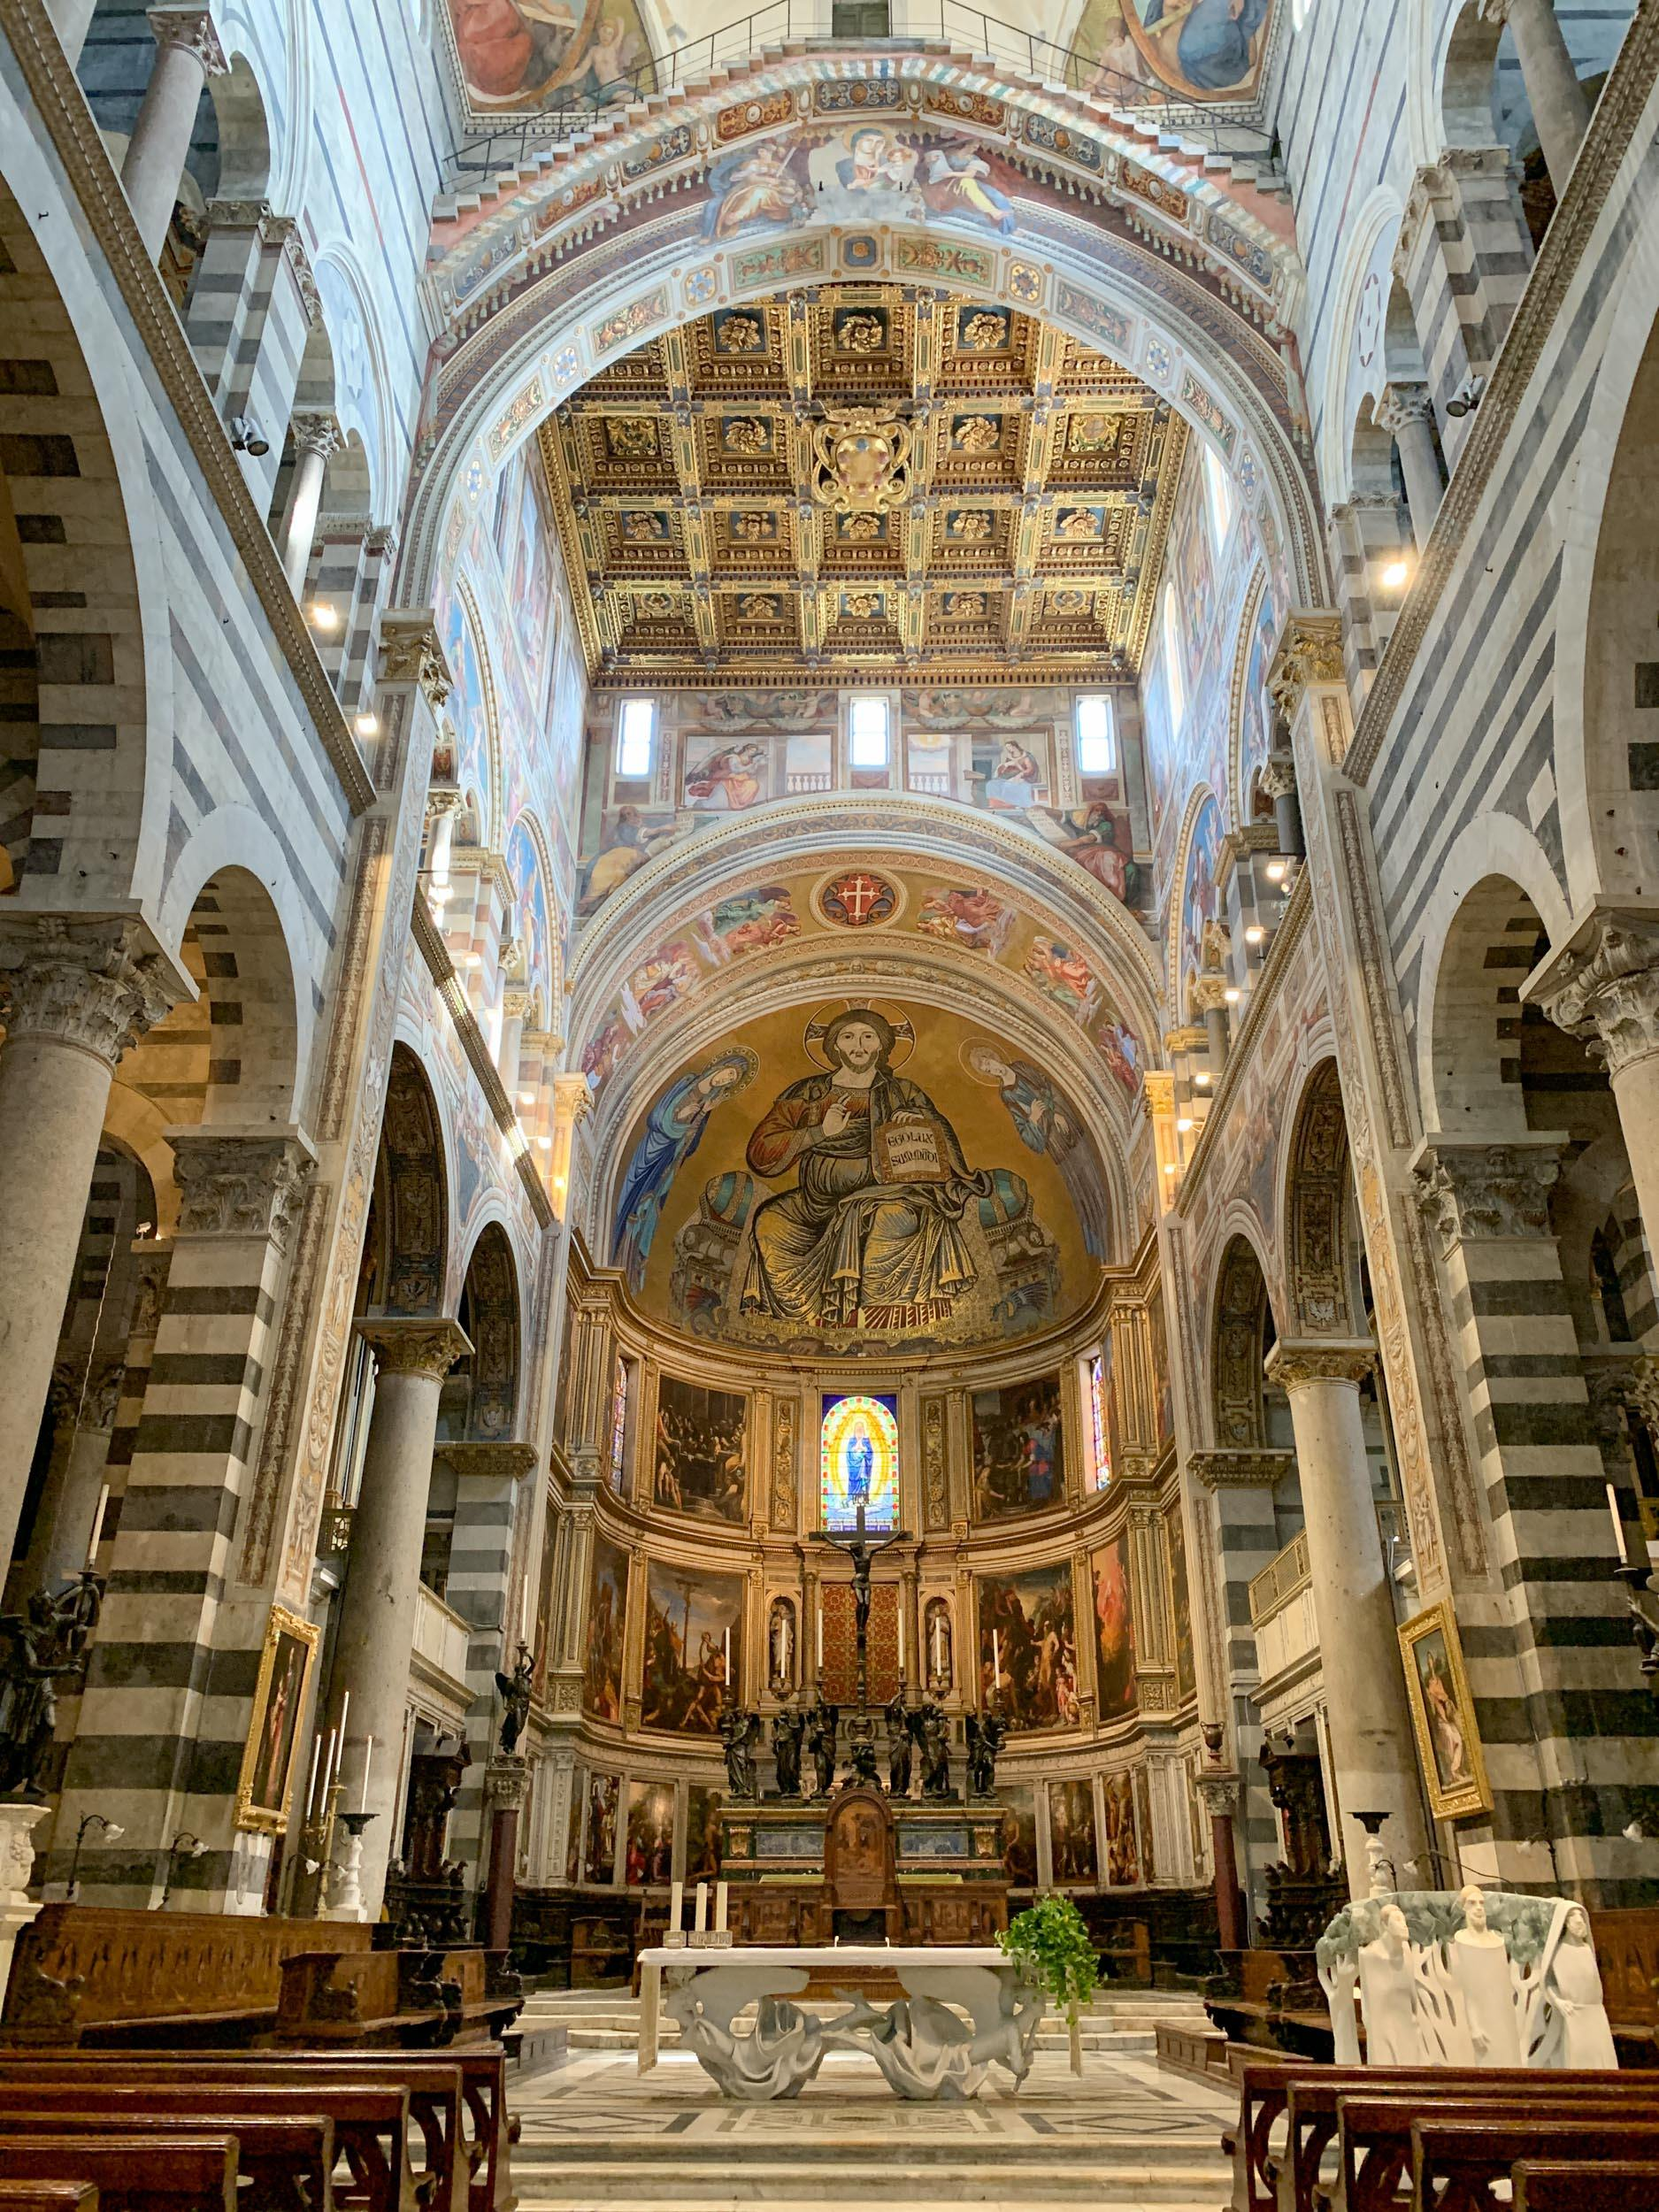 Interior of Pisa Cathedral